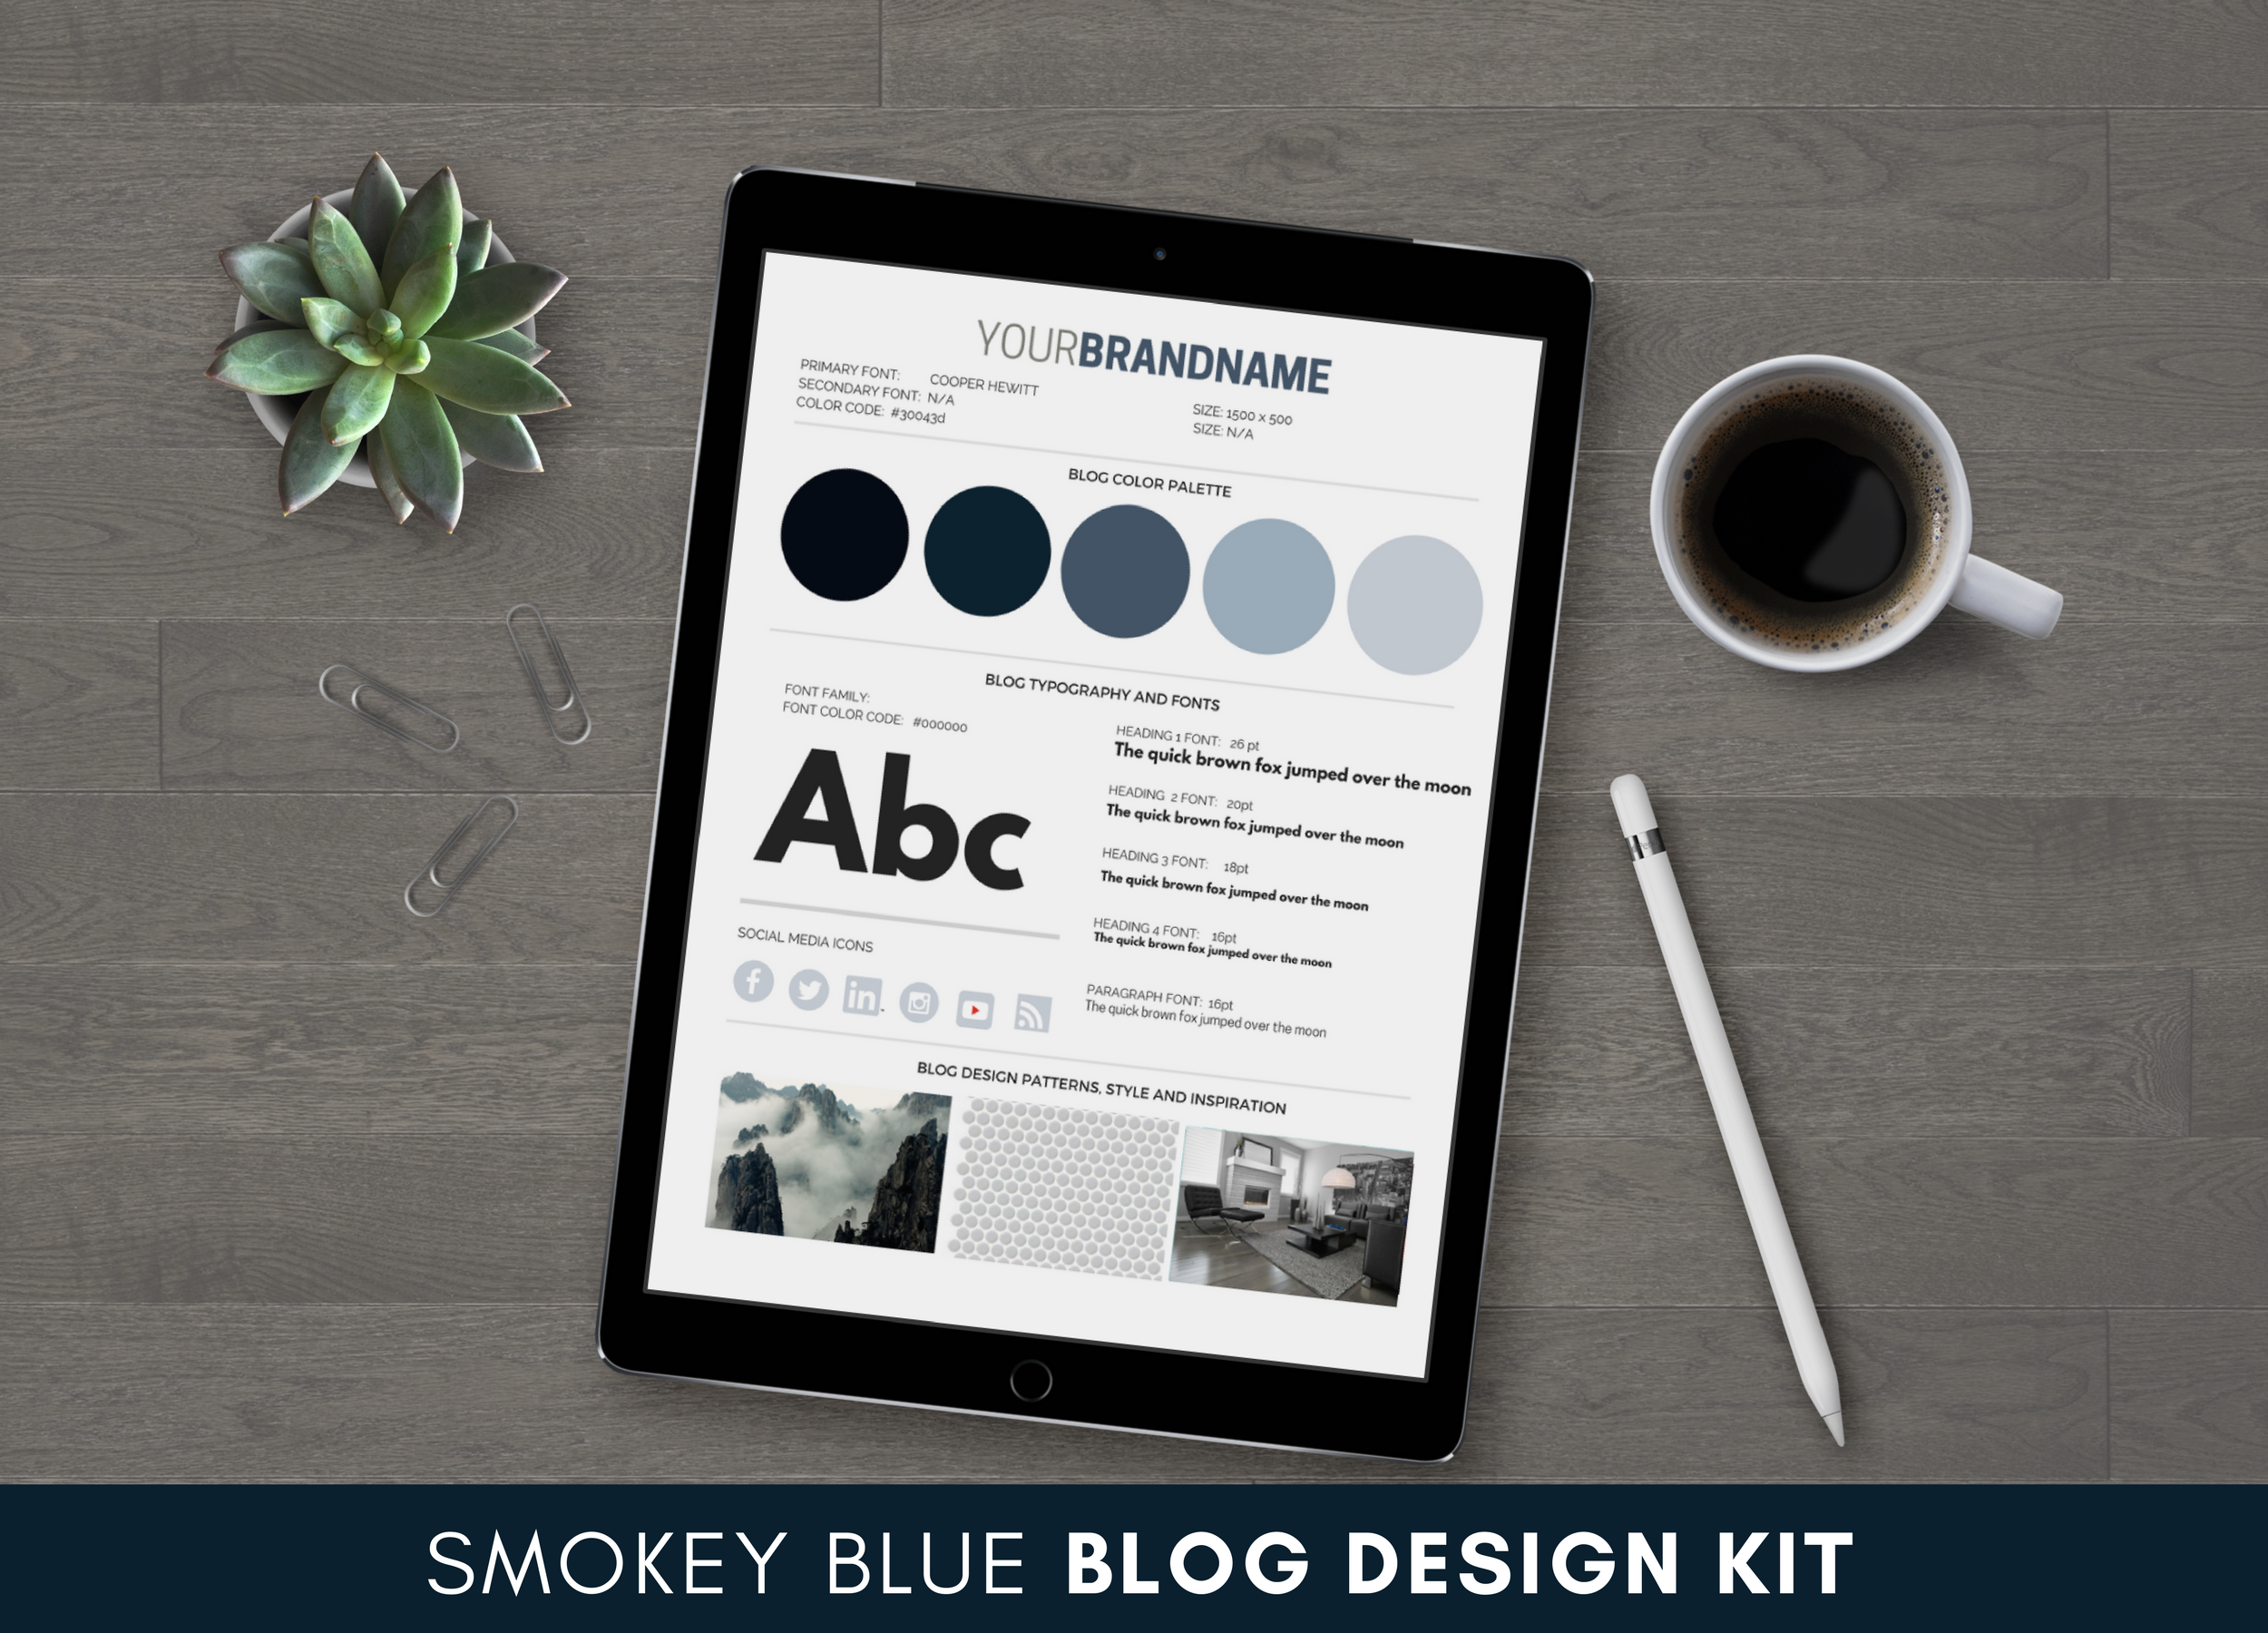 Smokey Blue Blog Design Kit